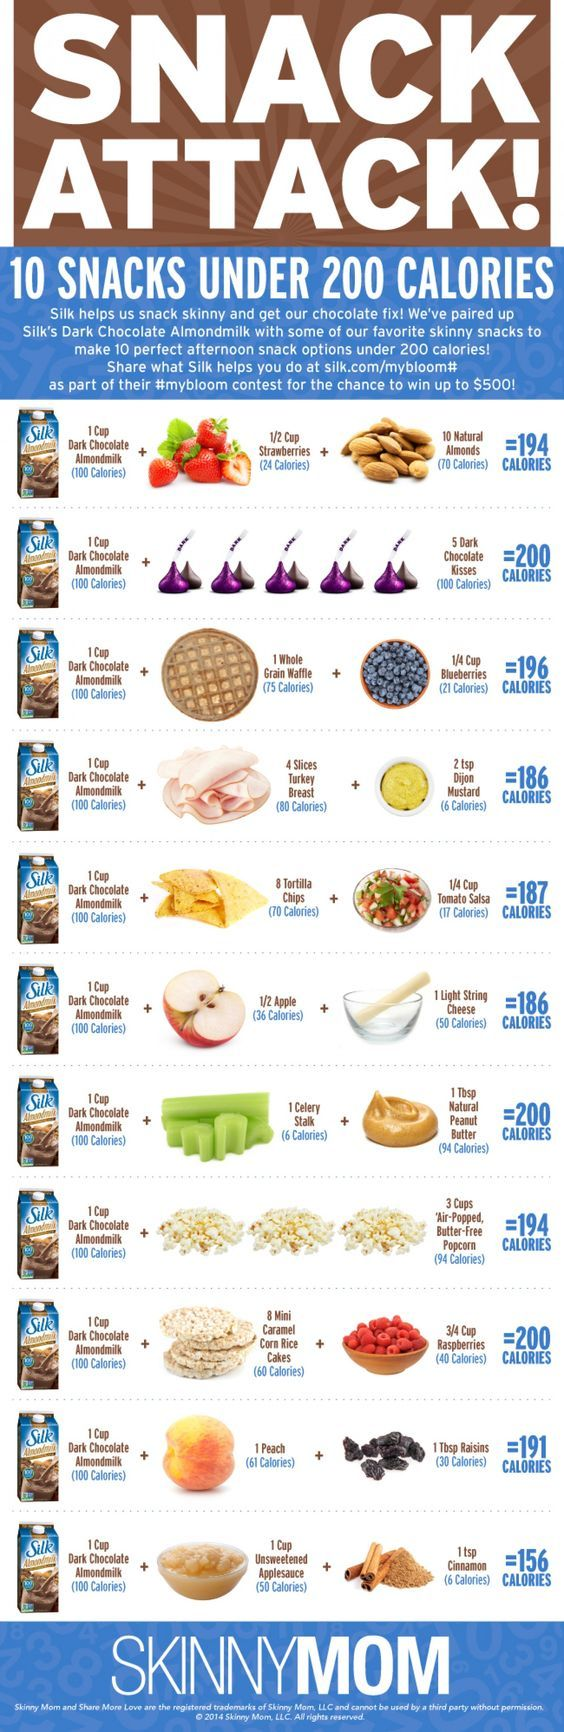 Snack Attack Infographic